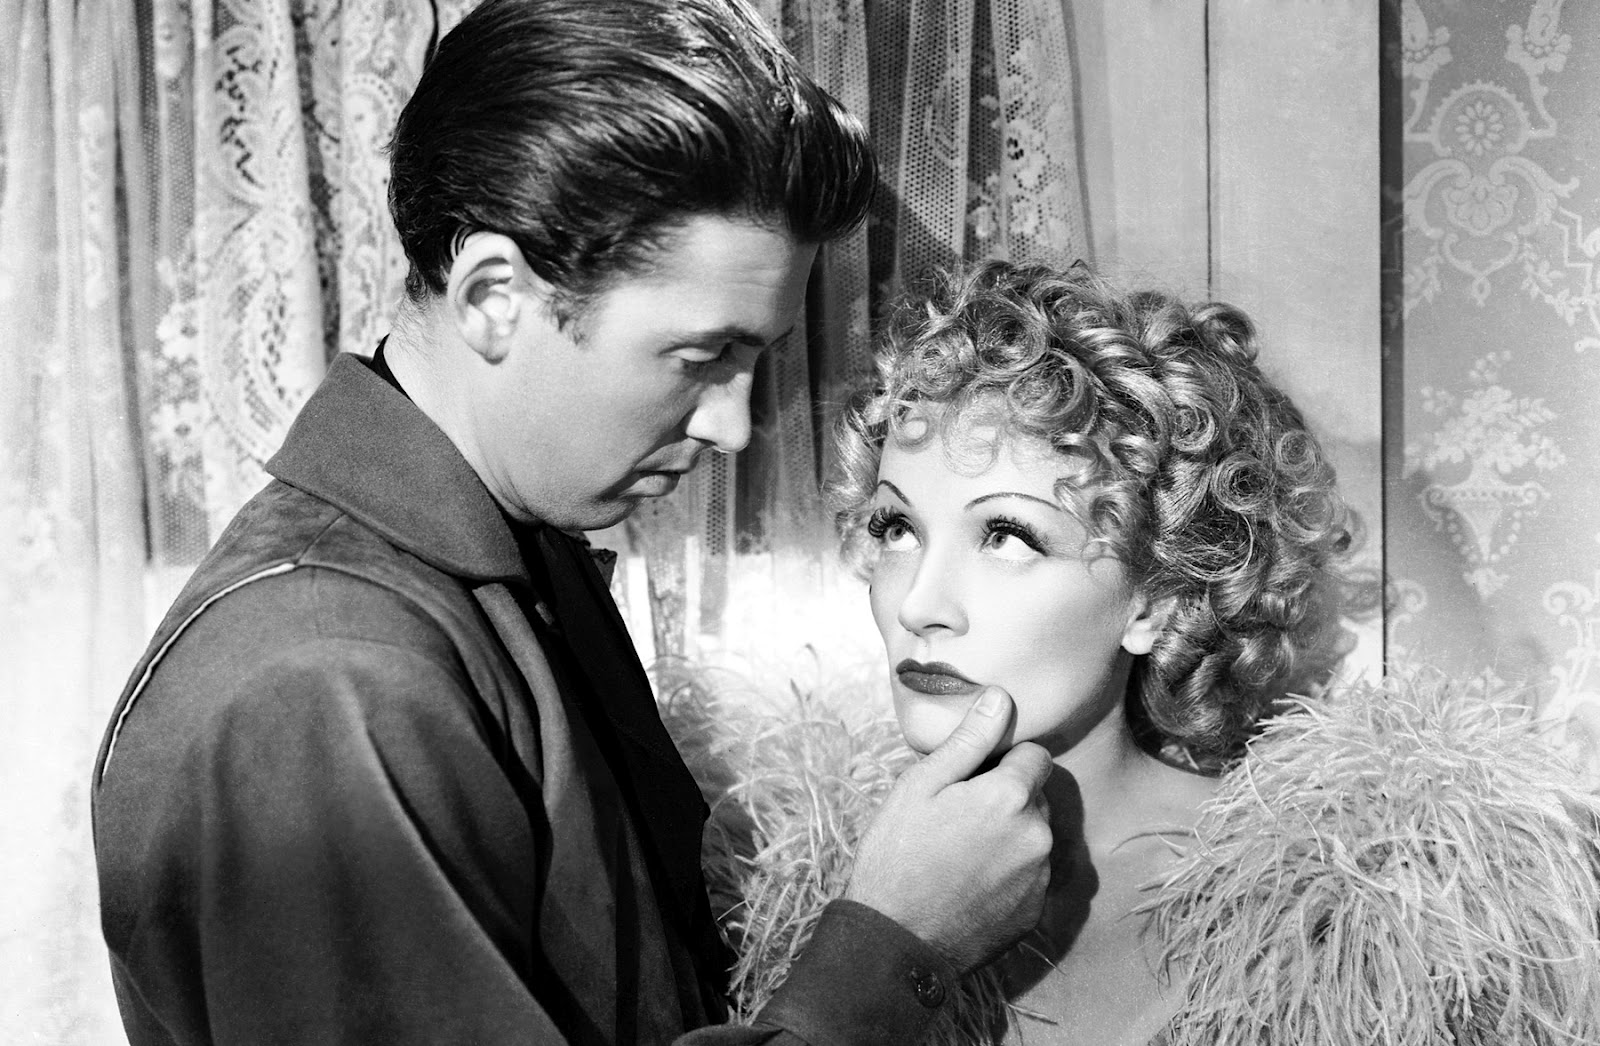 James Stewart and Marlene Dietrich in 1939's Destry Rides Again